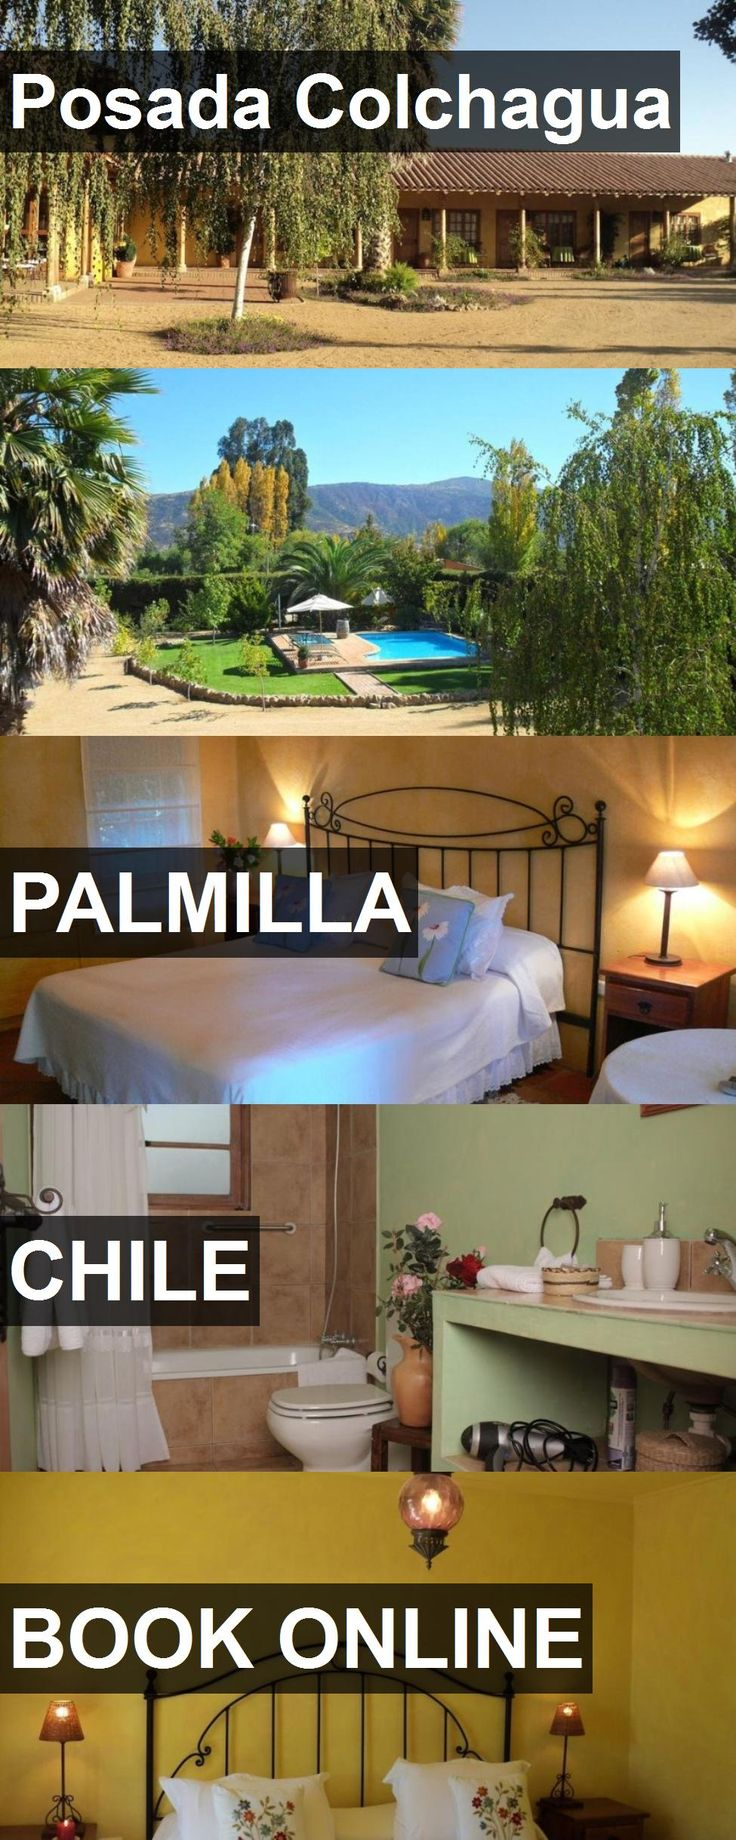 Hotel Posada Colchagua in Palmilla, Chile. For more information, photos, reviews and best prices please follow the link. #Chile #Palmilla #travel #vacation #hotel